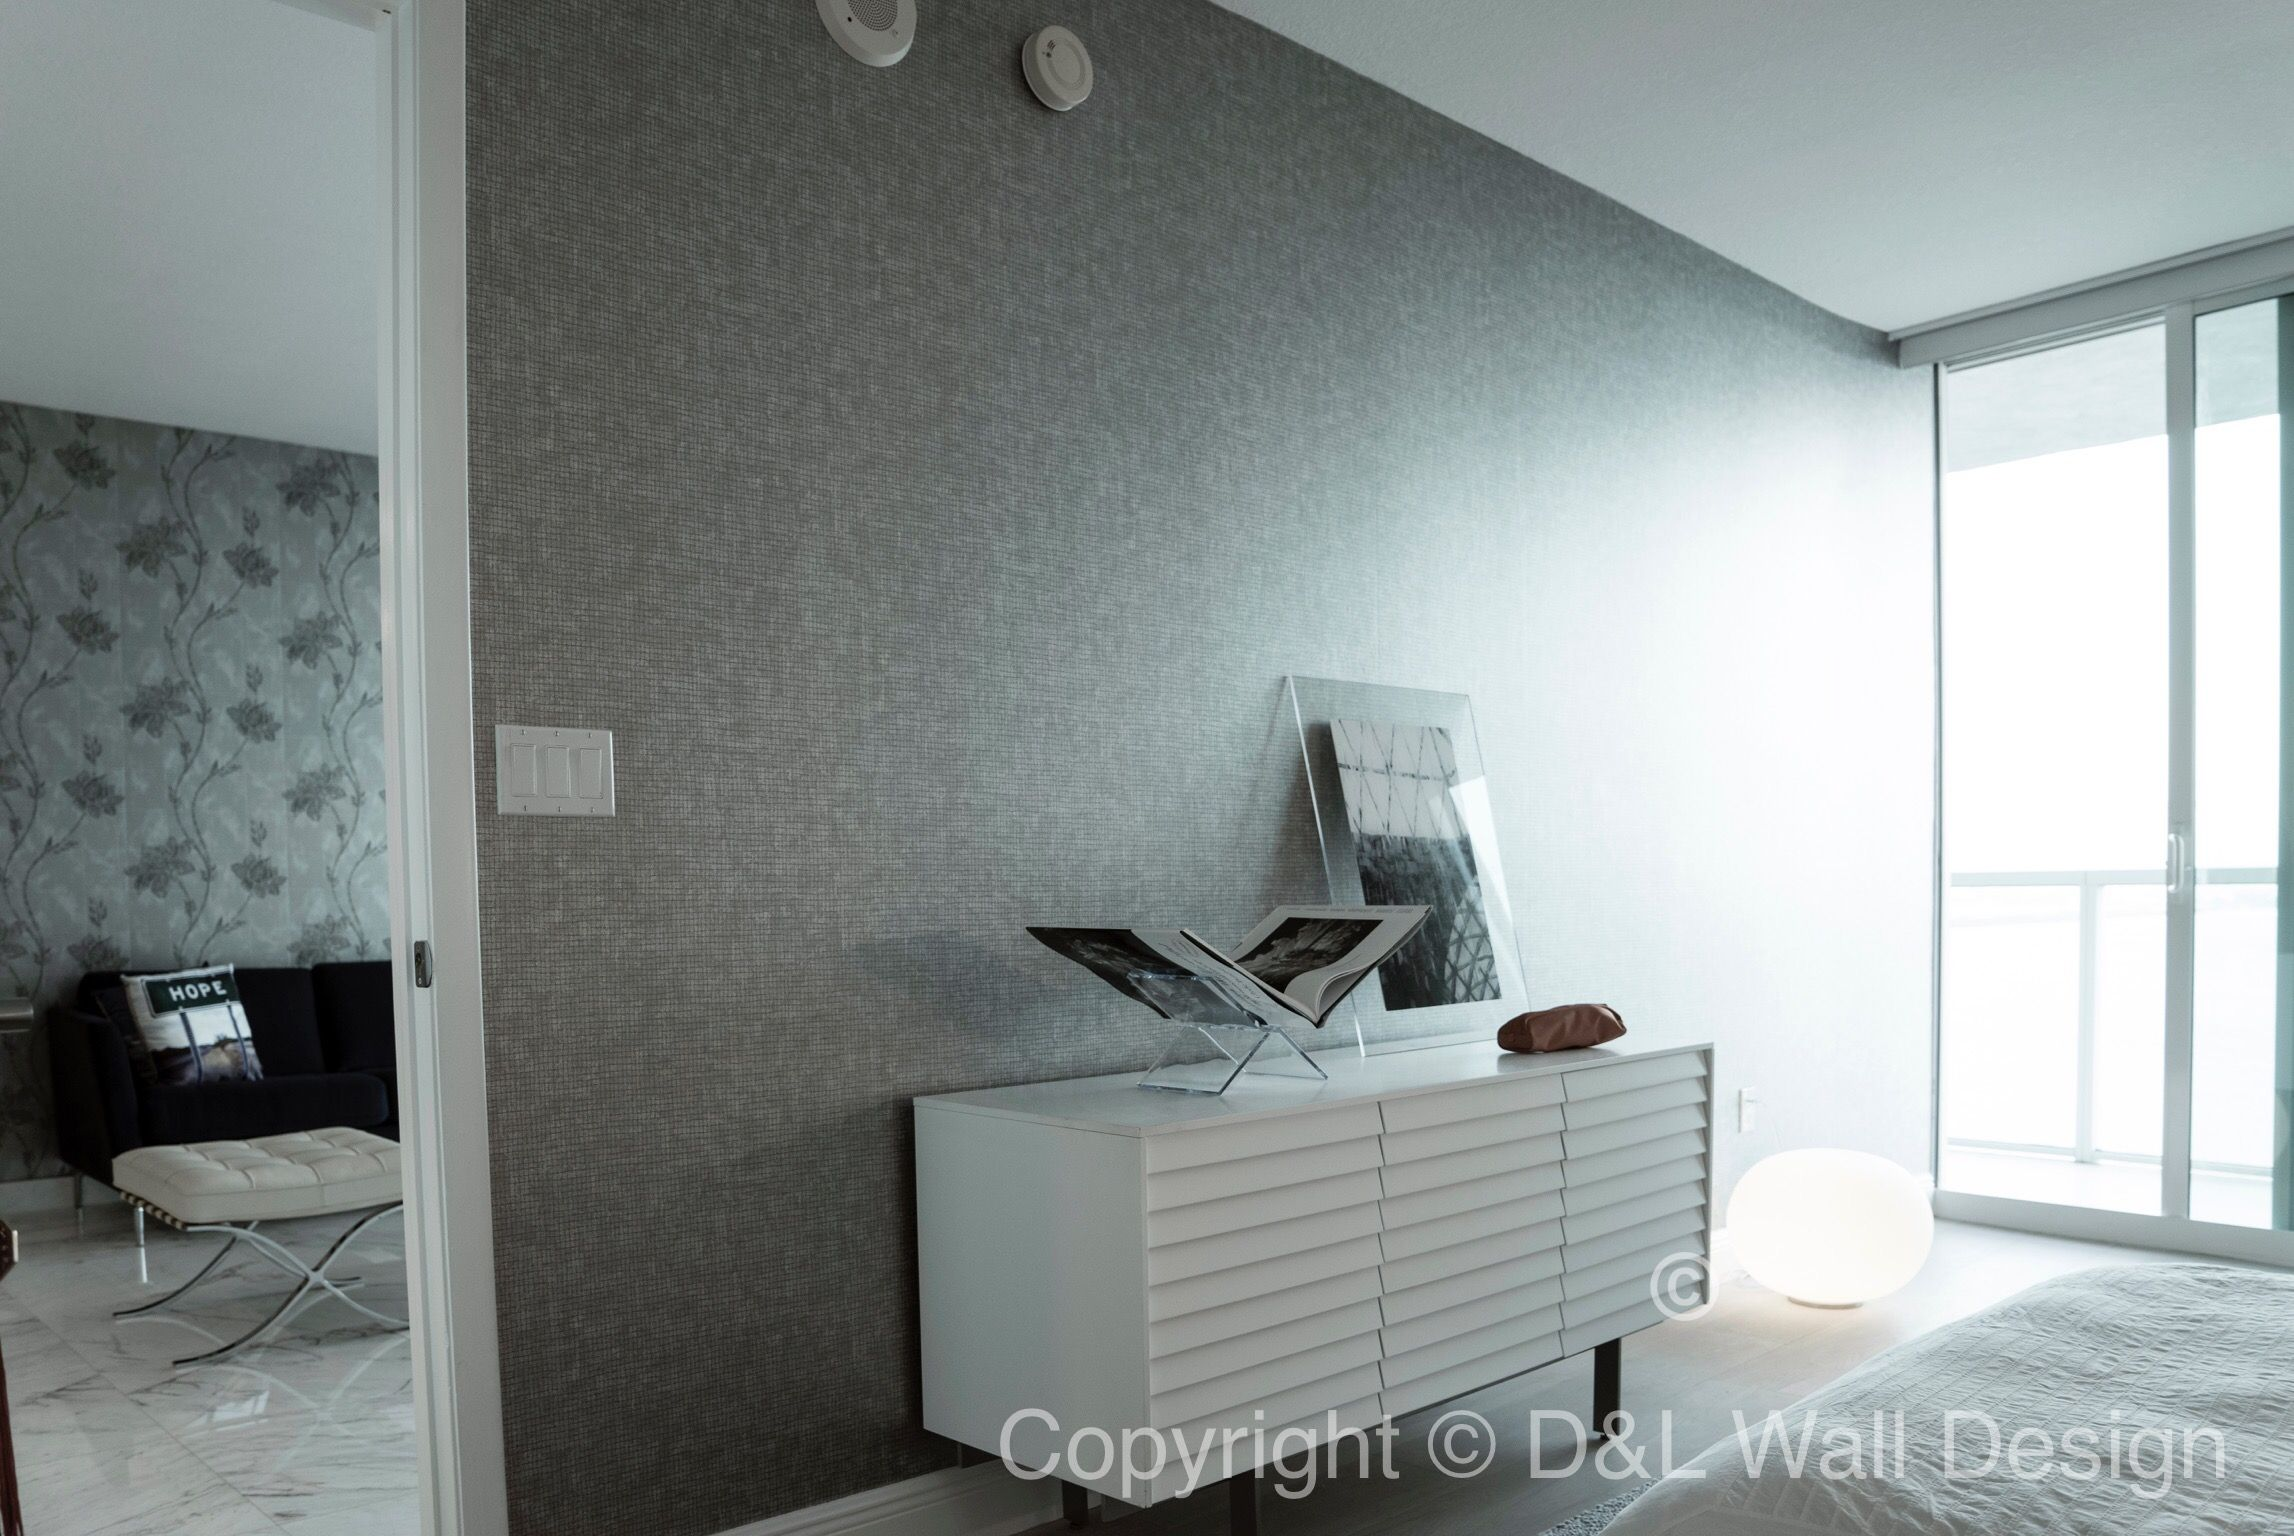 Wallpaper Wallcoverings Contractors D L Wall Design Geometric Trellis Wallpaper Trellis Wallpaper Black And White Wallpaper